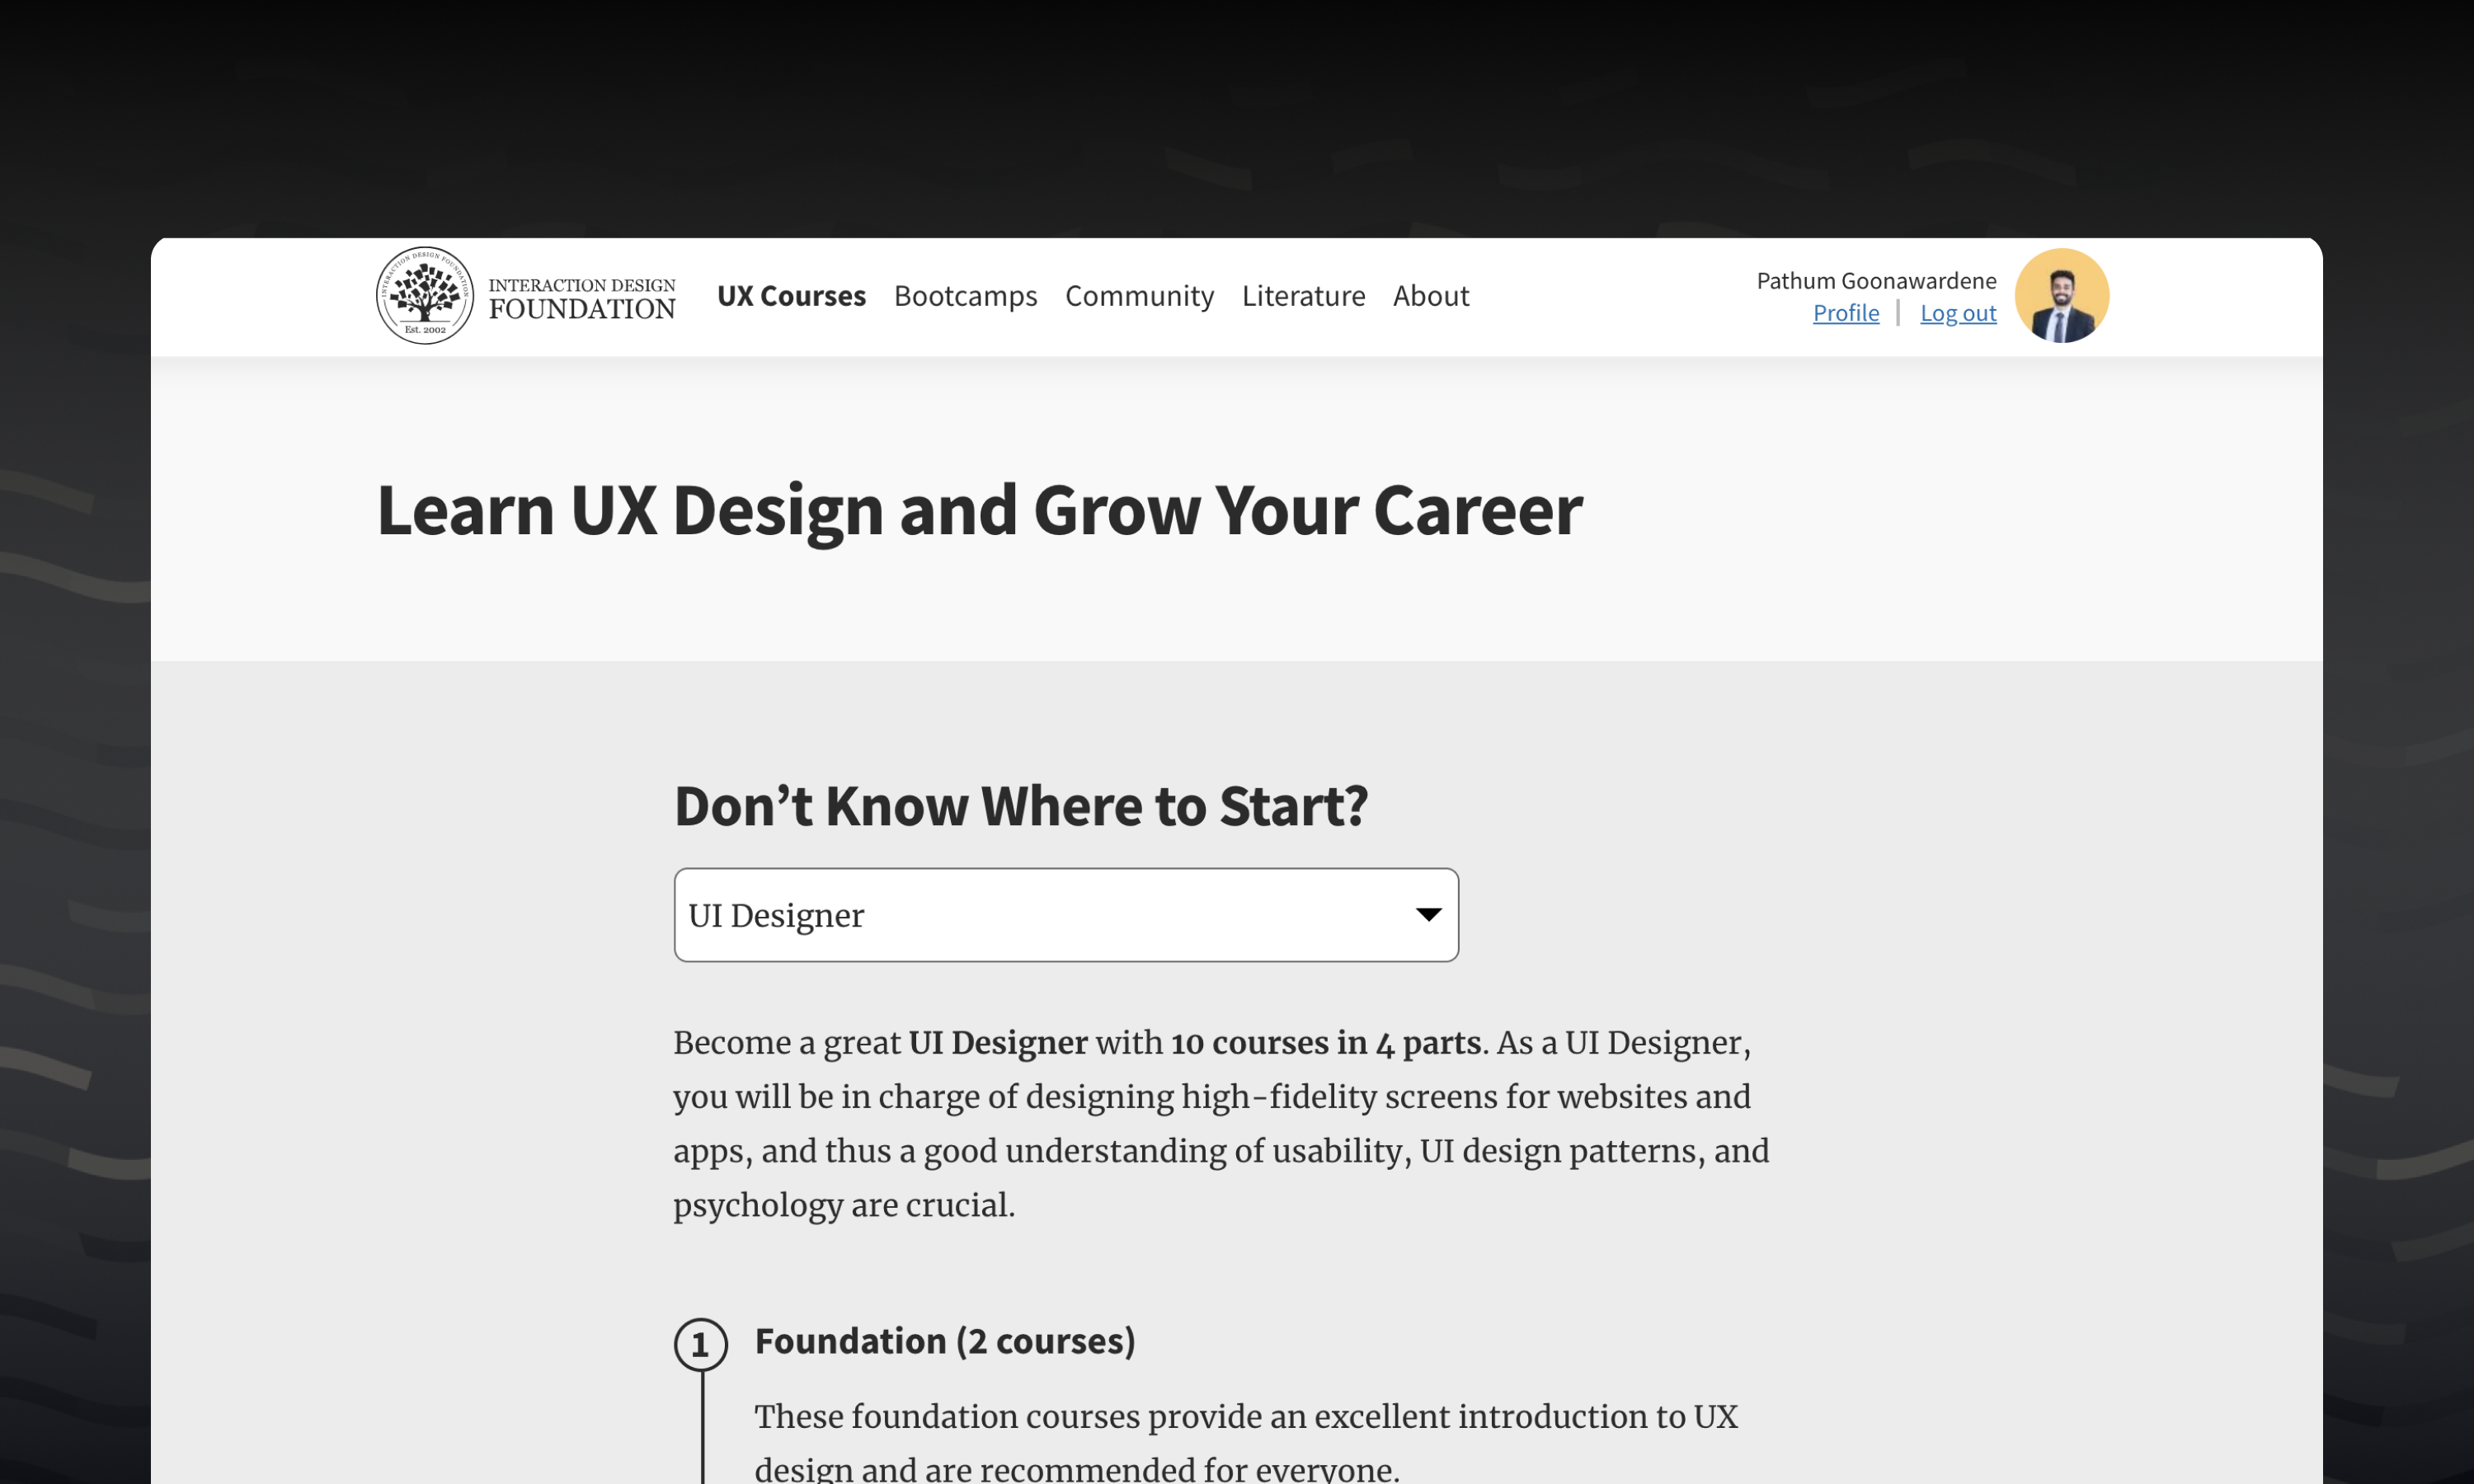 Career paths by IxDF